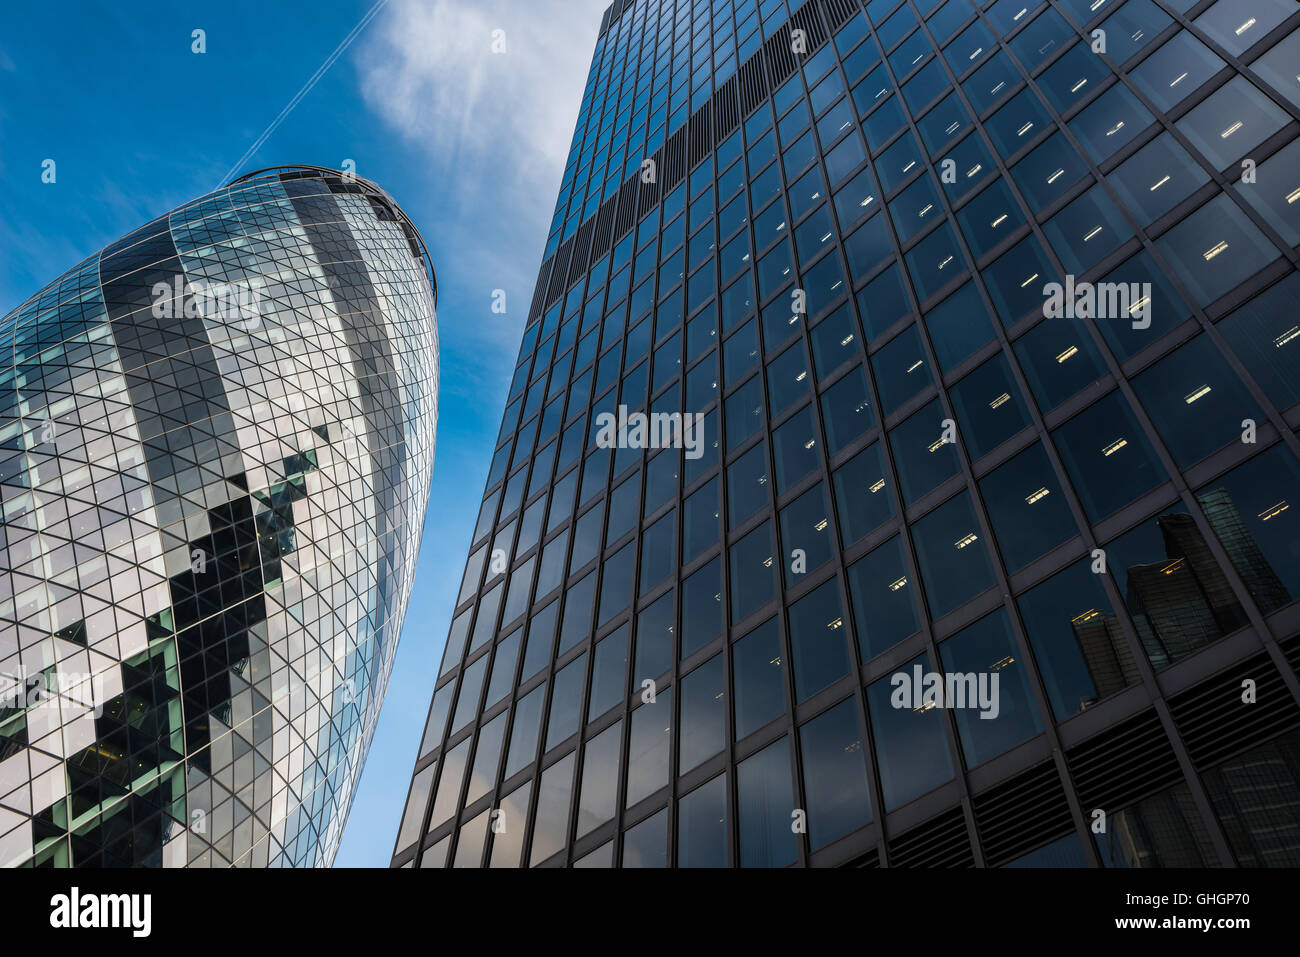 The Gherkin office building, City of London, London, United Kingdom - Stock Image